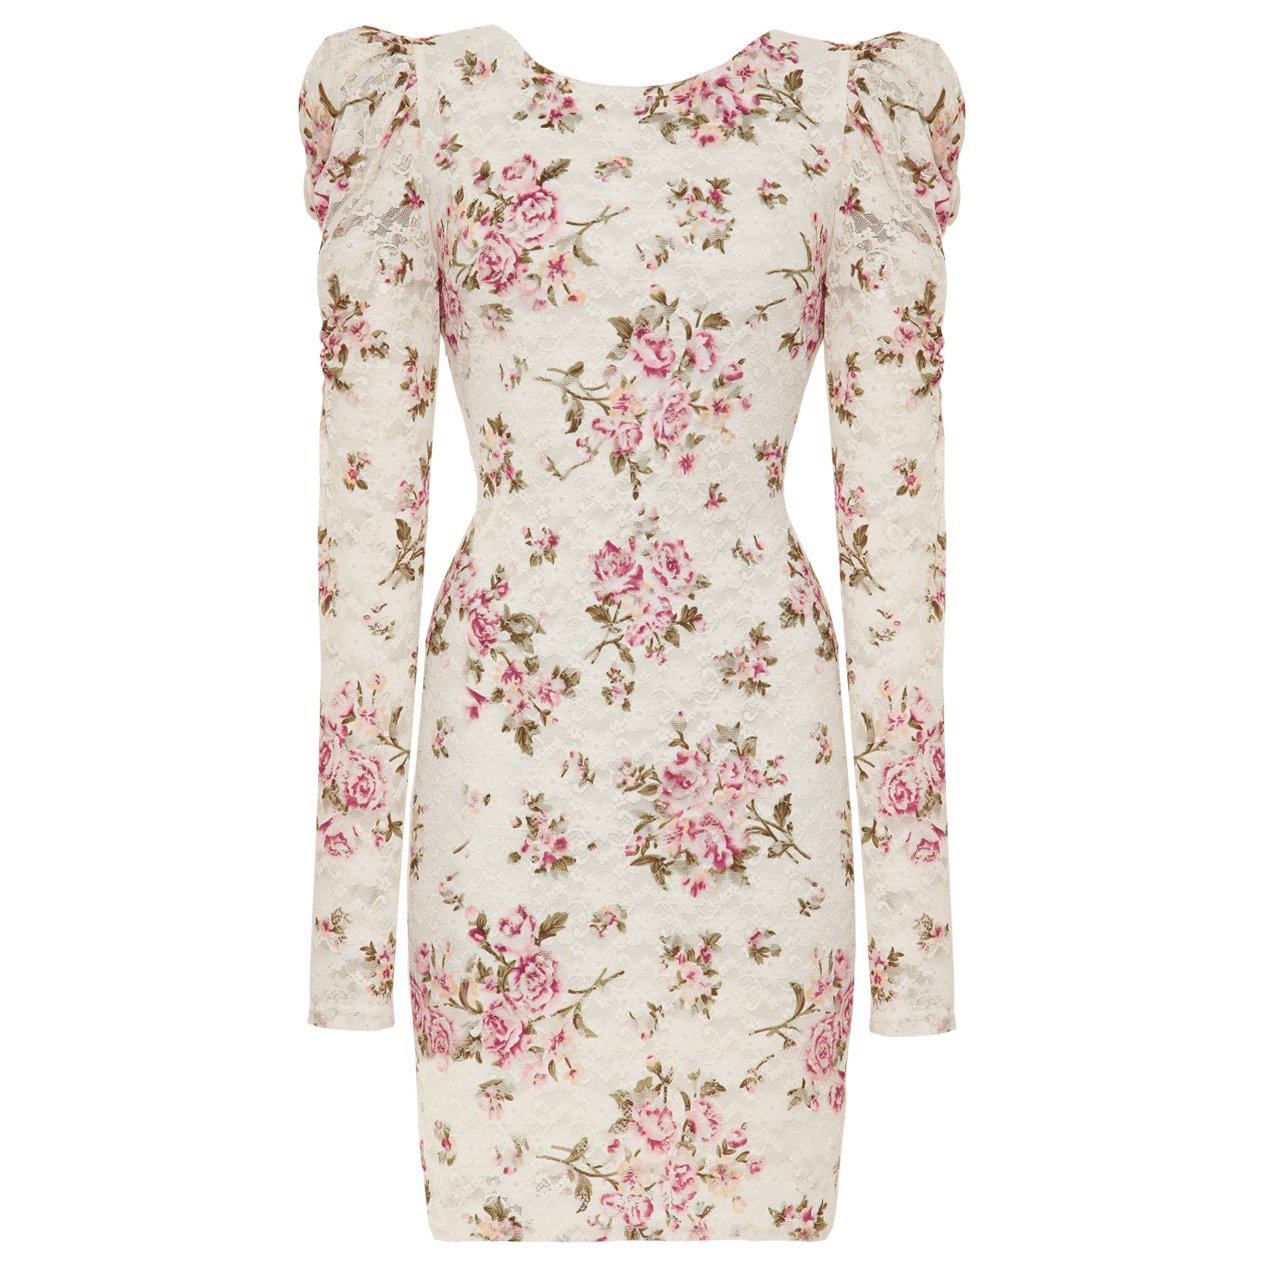 WOMENS CREAM VINTAGE FLORAL PRINT EVENING COCKTAIL BODYCON MINI PARTY PROM DRESS UK 12-14, US 8-10